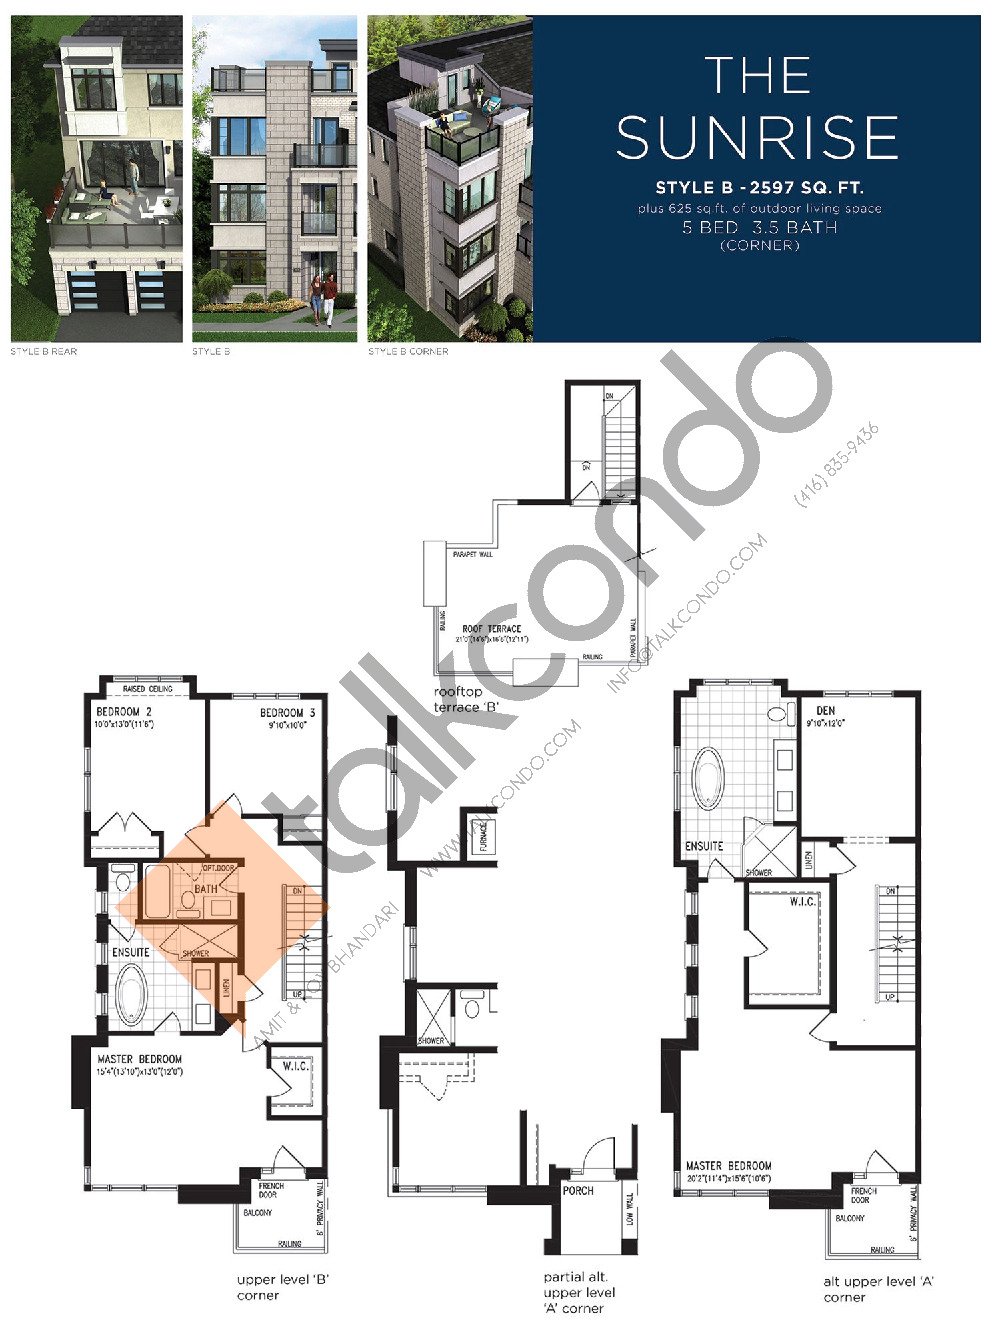 The Sunrise (3/3) Floor Plan at Lake Breeze - 2597 sq.ft